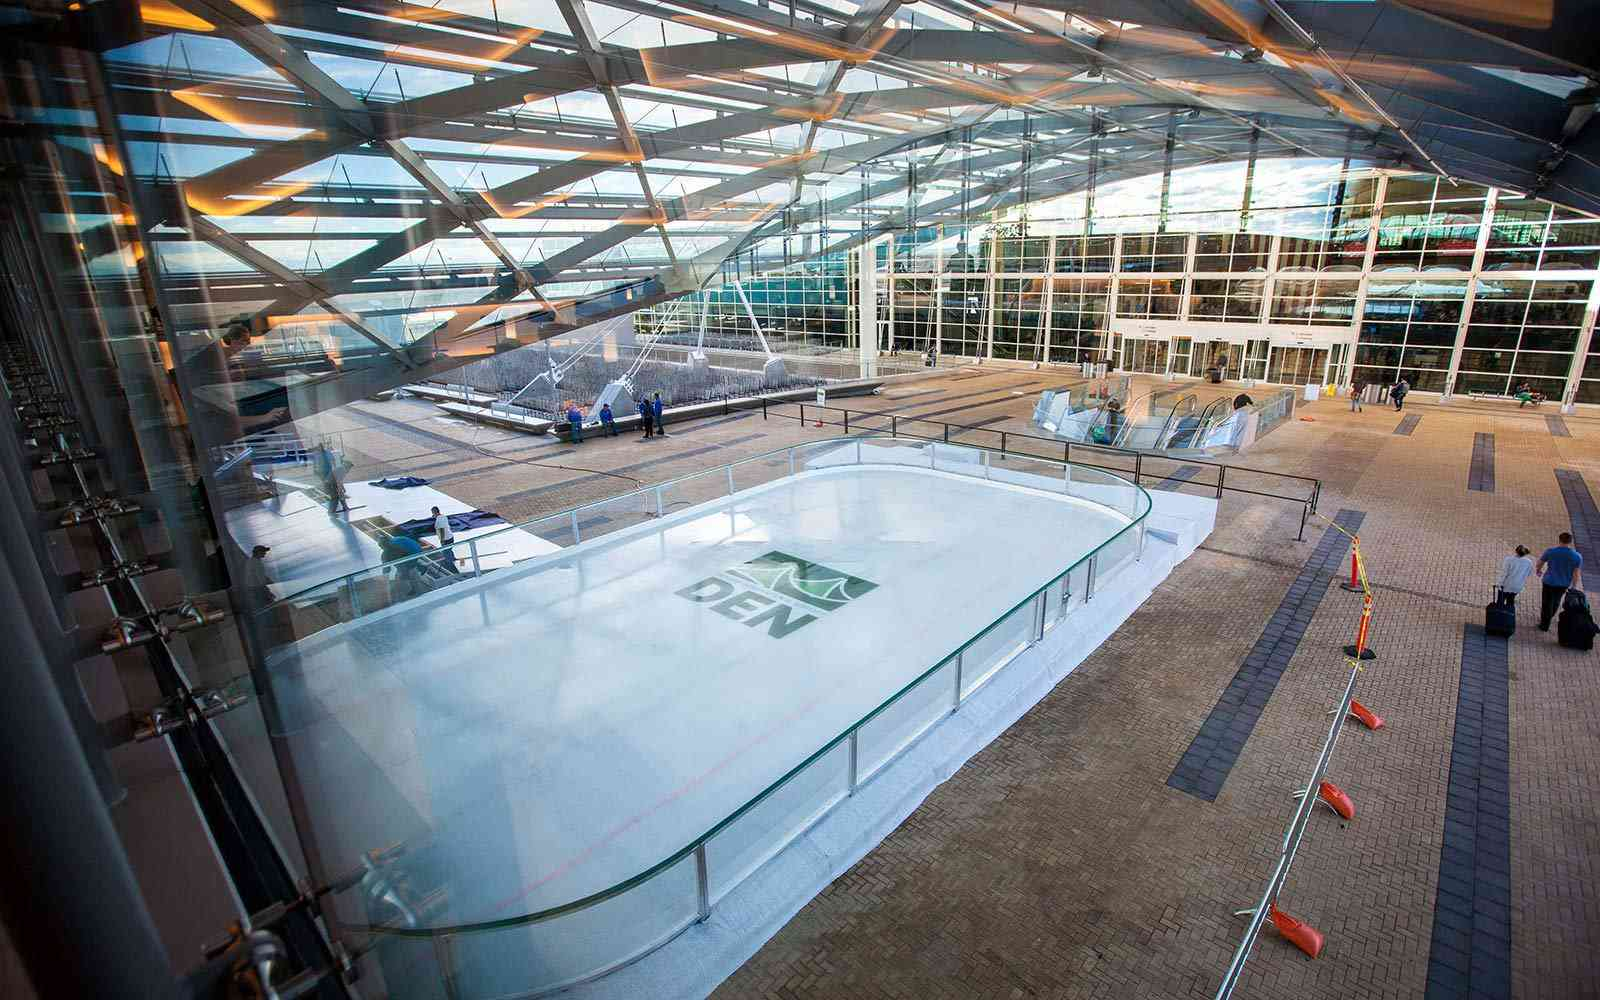 DIA's Ice Rink outside of the terminal